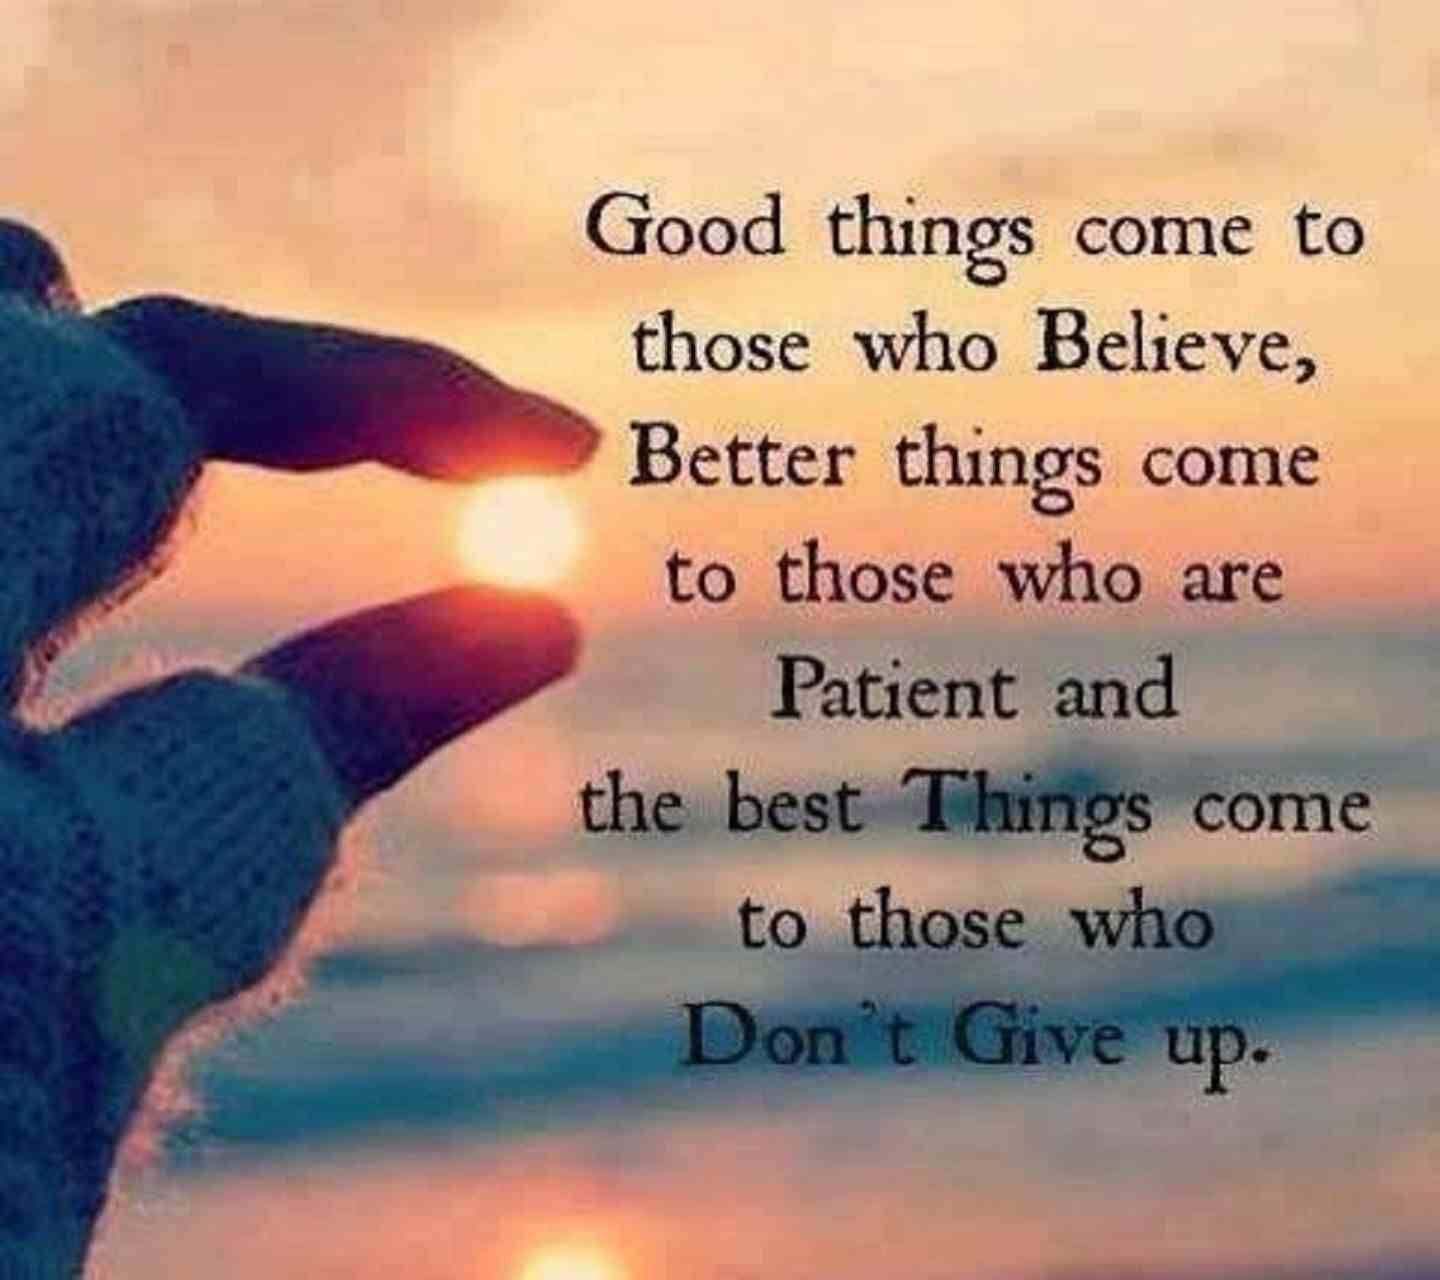 Good things come to those who believe, better things come to those who are patient, and the best things come to those who don't give up